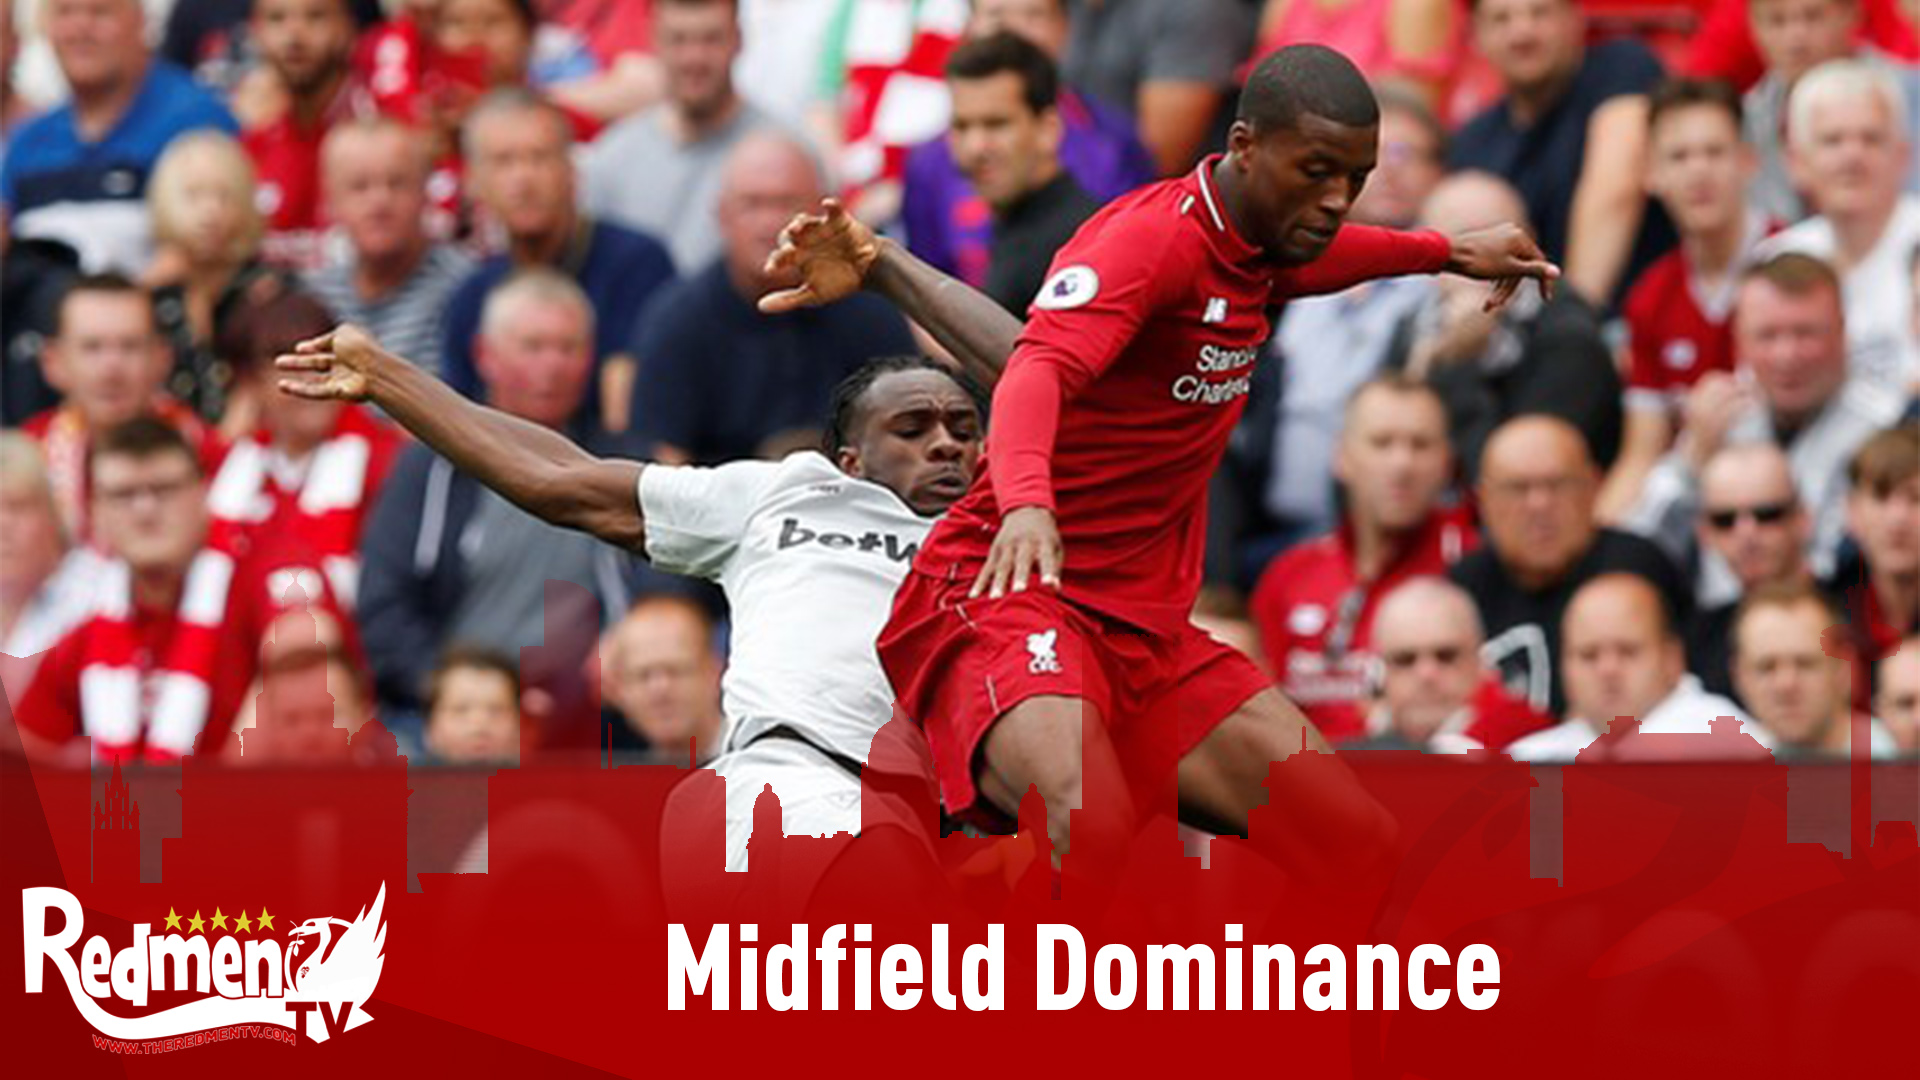 Midfield Dominance